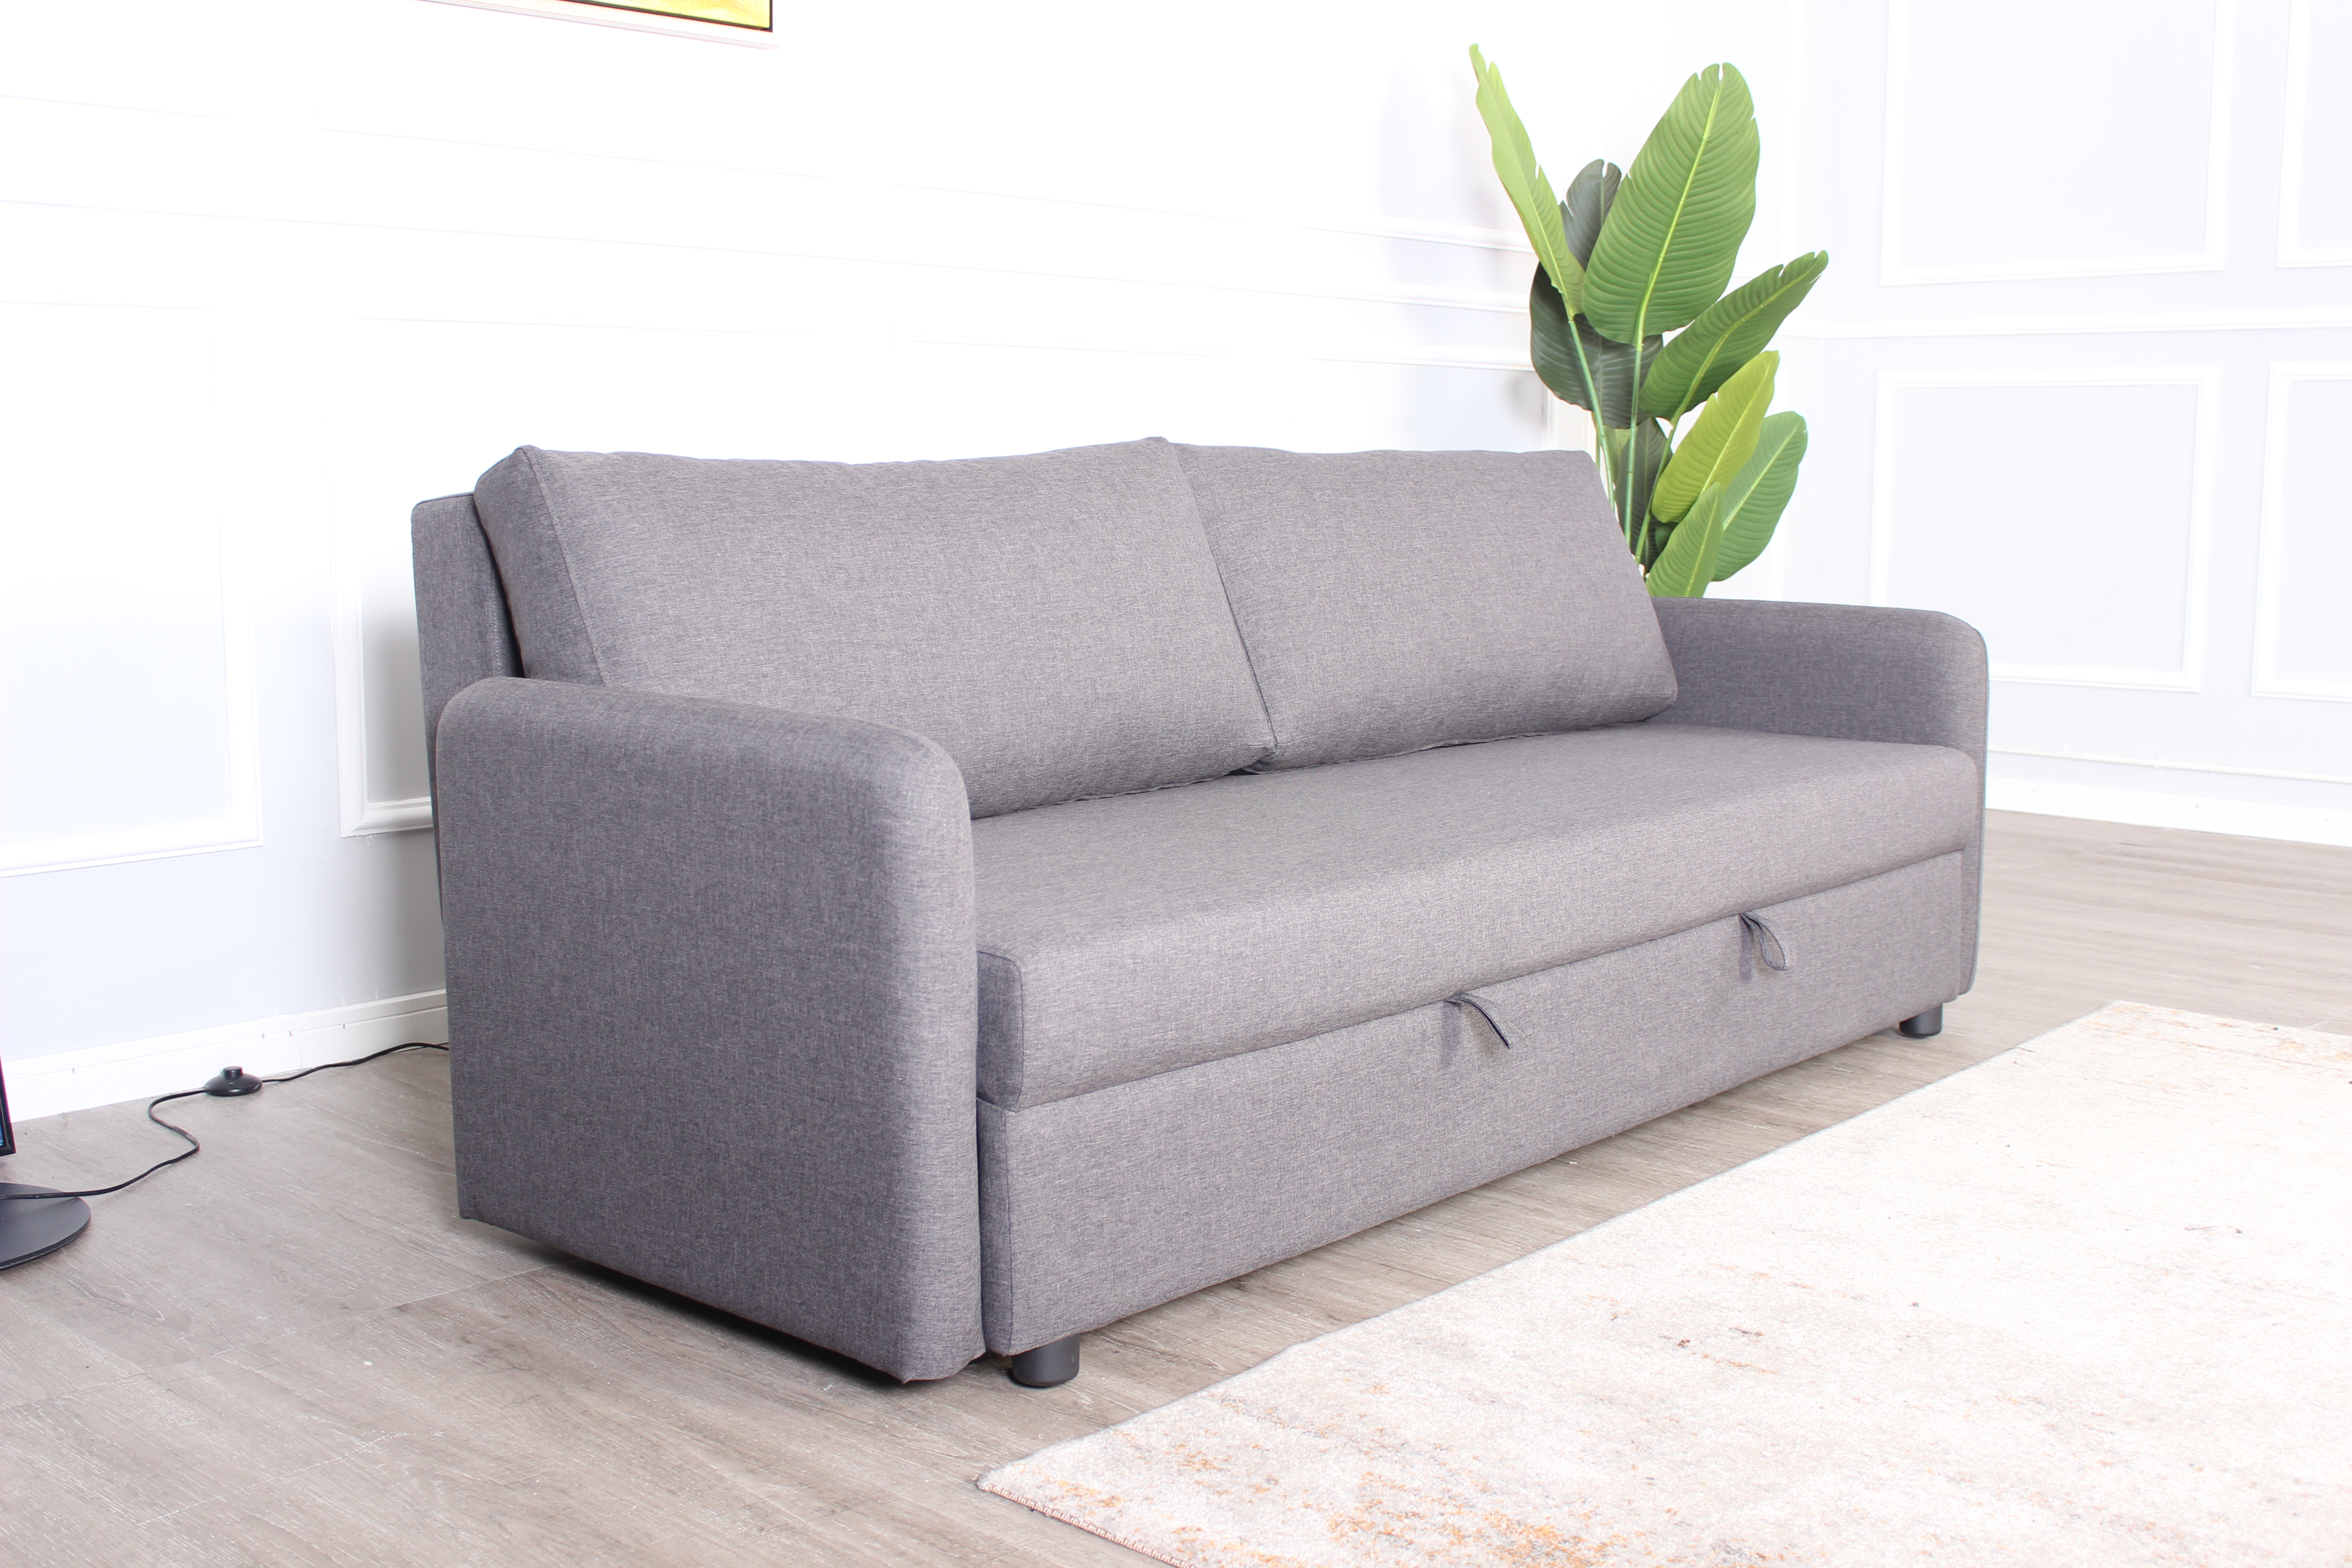 3S STELLA sofa bed, gray polyester fabric, natural wooden sofa legs